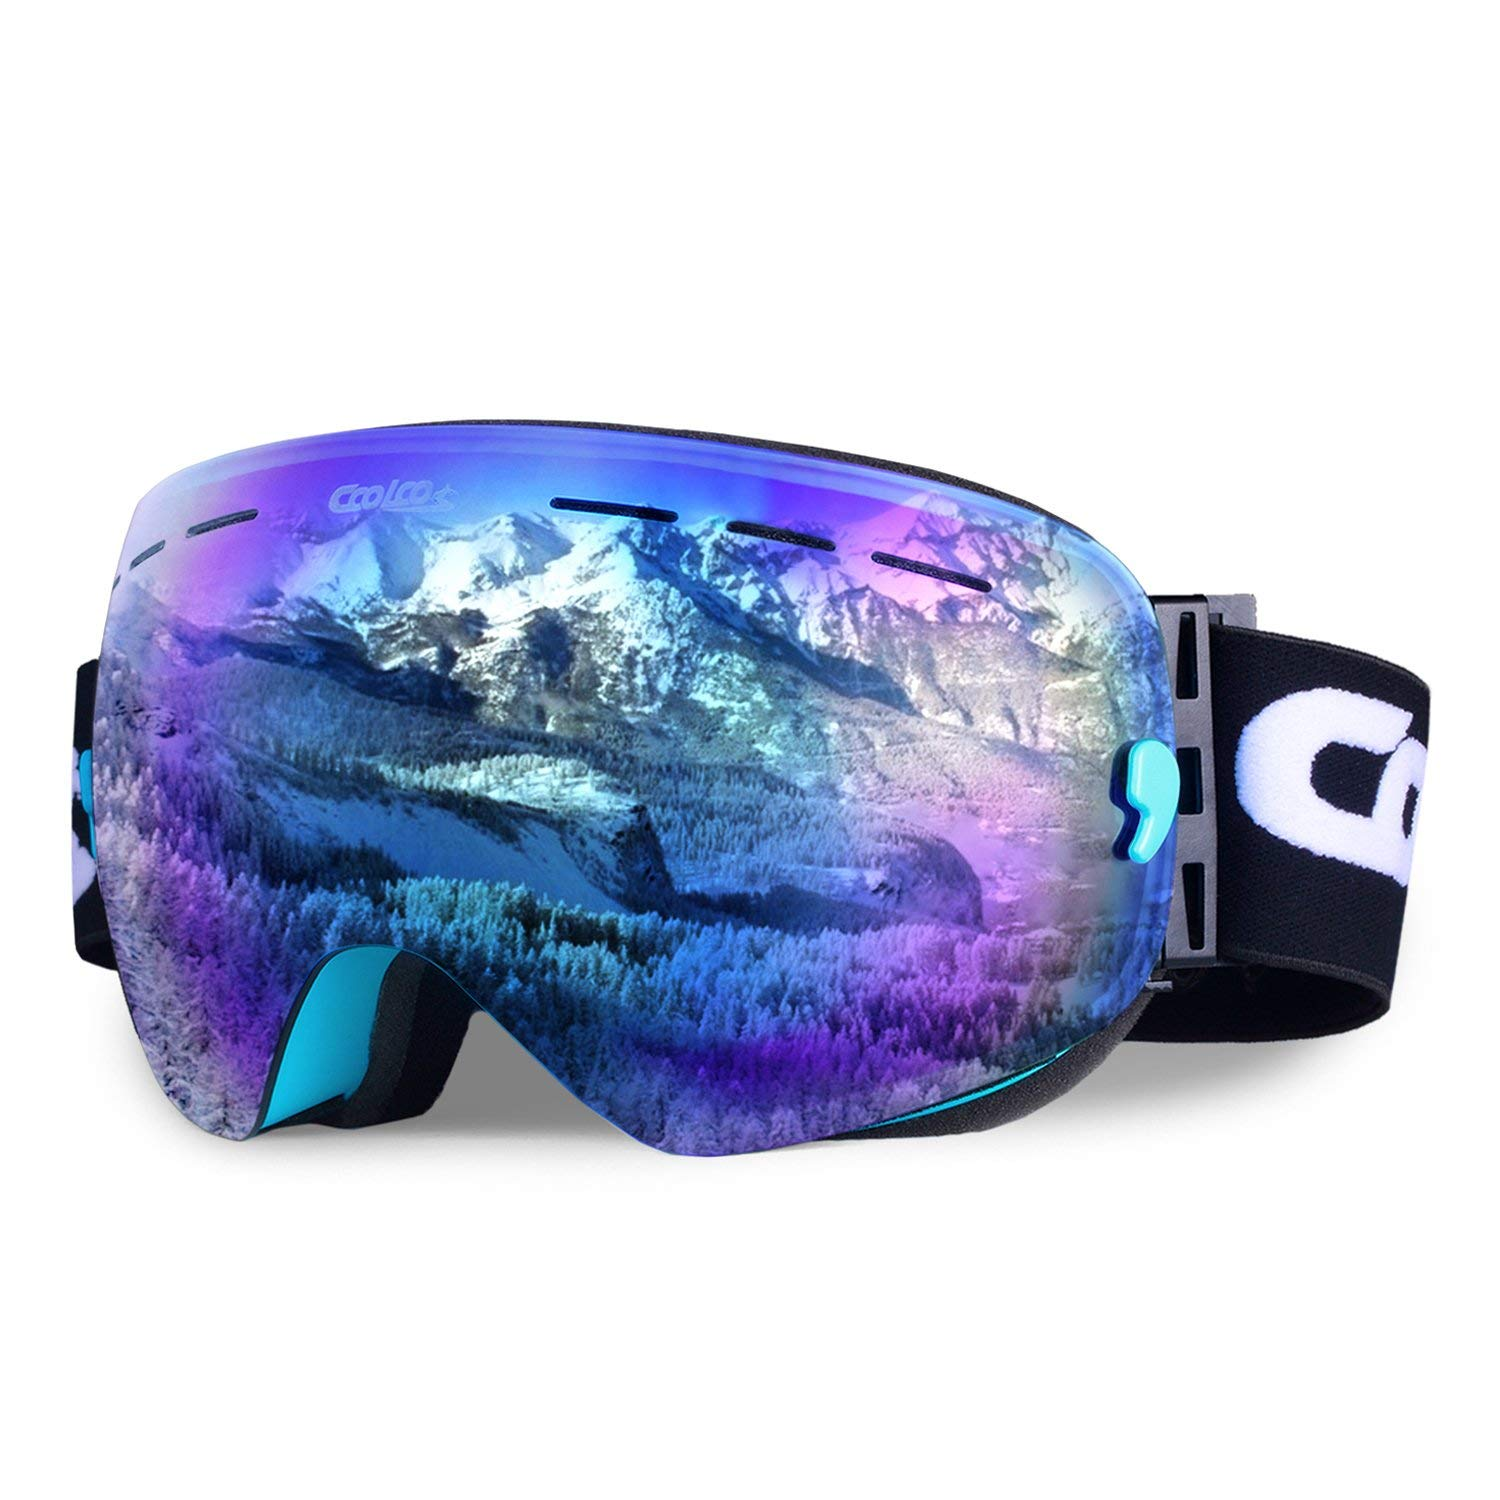 COOLOO Ski Goggles, Snowboard Goggles with Anti-fog UV Protection Interchangeable Spherical Dual Lens - OTG Over Glasses Helmet Compatible for men women boys girls kids